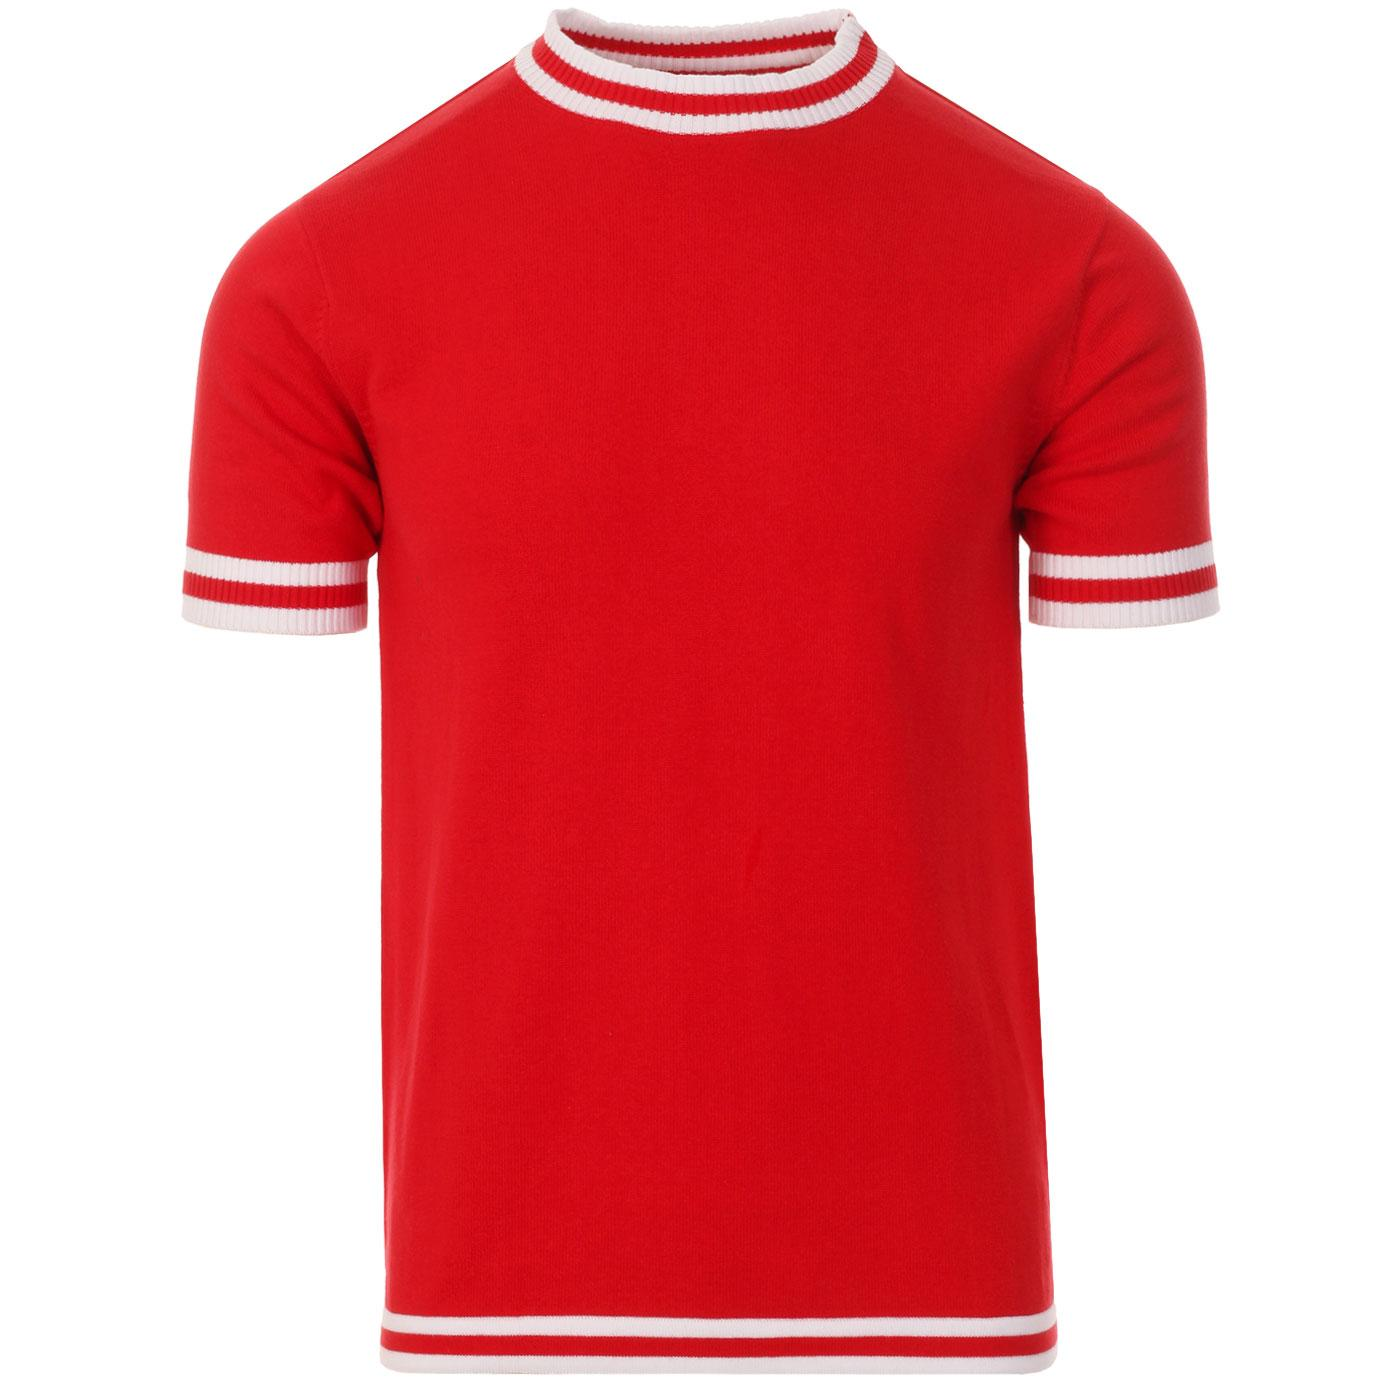 Moon MADCAP ENGLAND 60s Mod Tipped Knit Tee (TR)